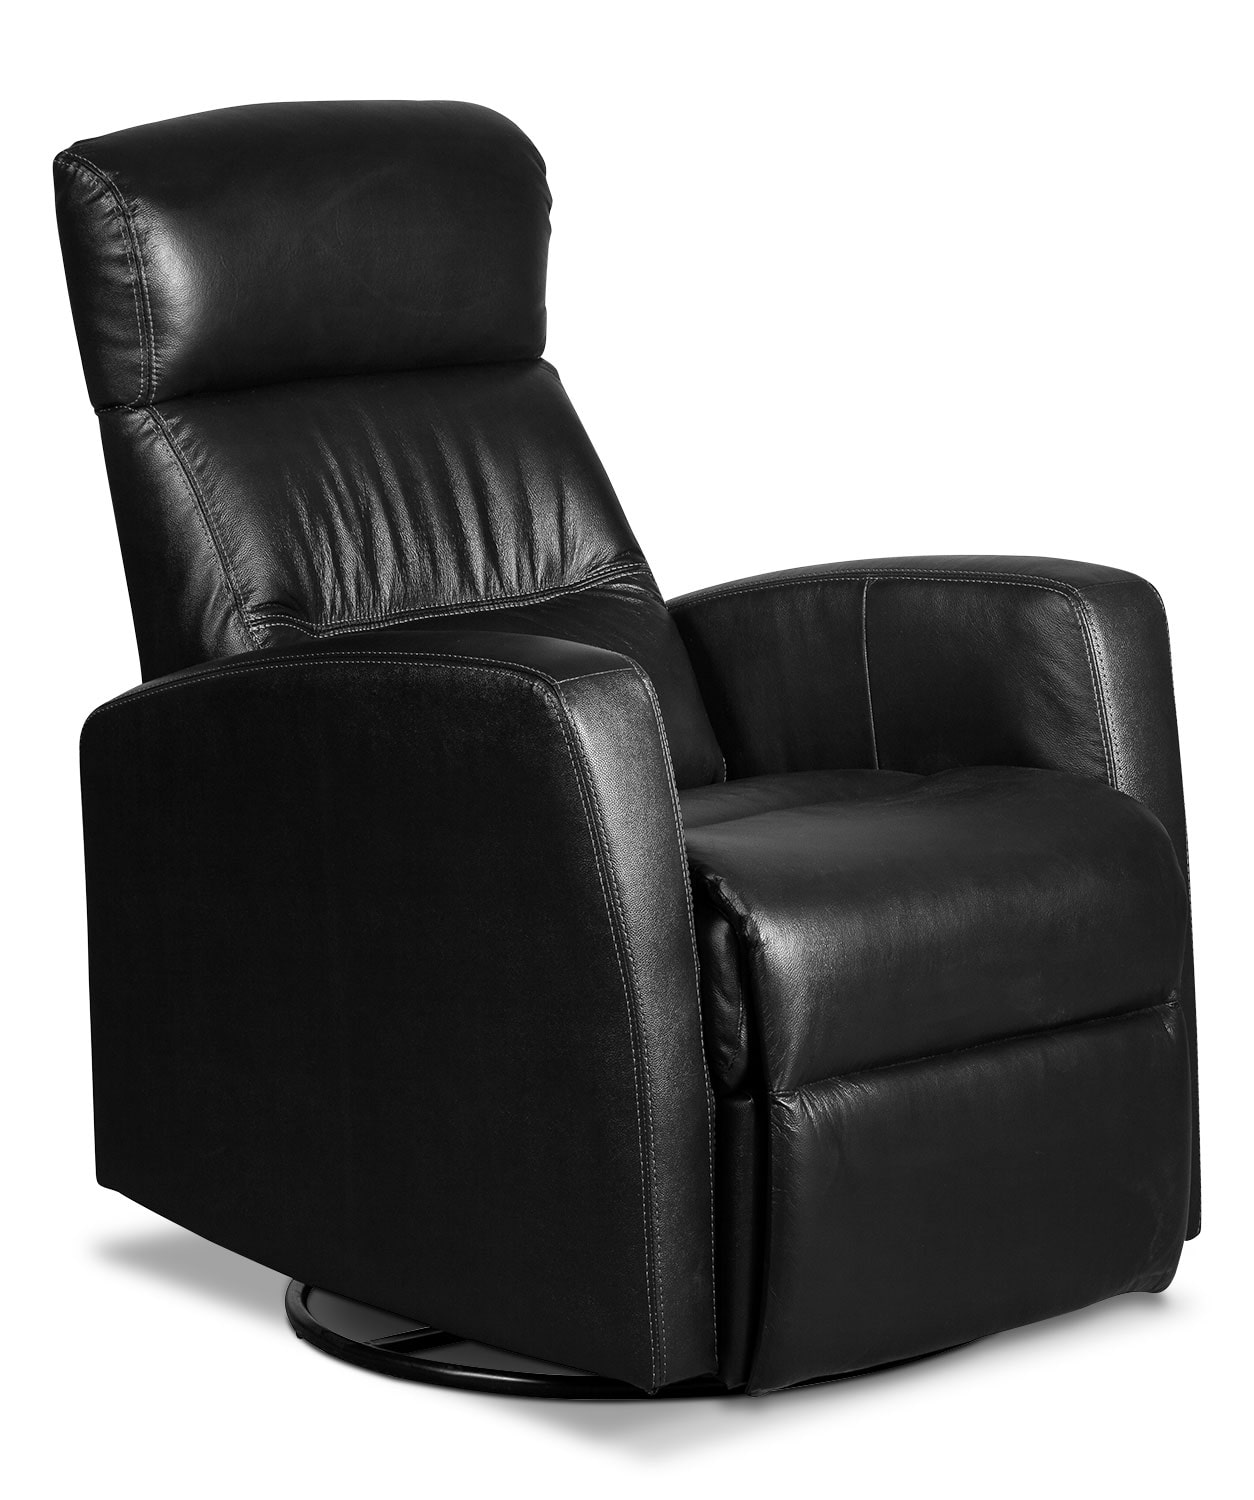 Penny Genuine Leather Swivel Rocker Reclining Chair – Black